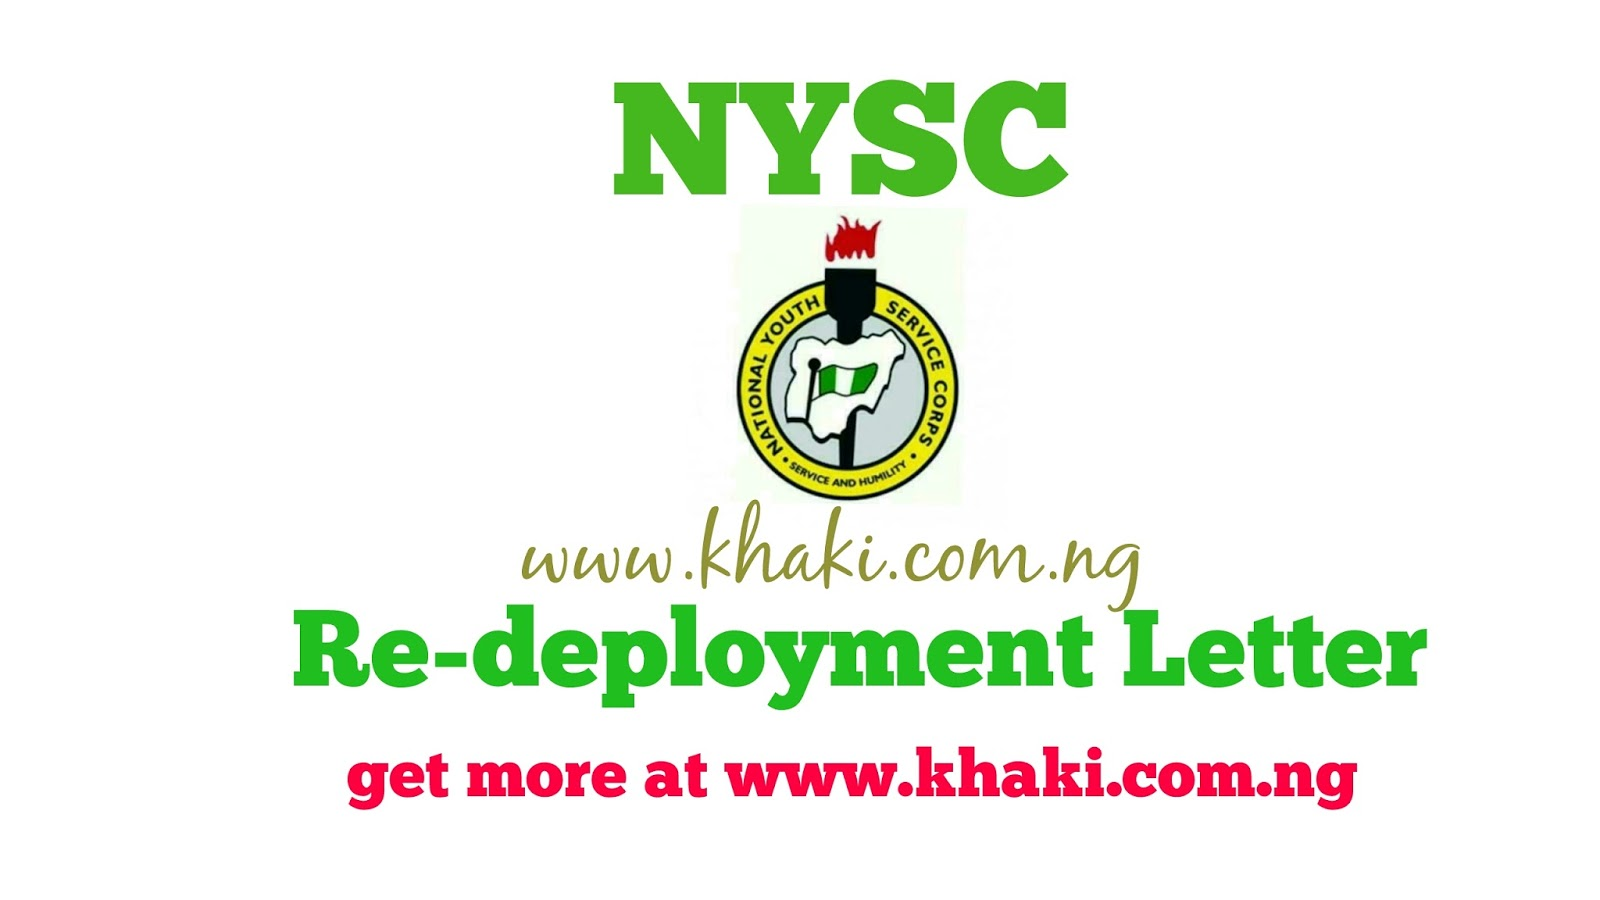 How to write the standard nysc redeployment letter thecheapjerseys Image collections